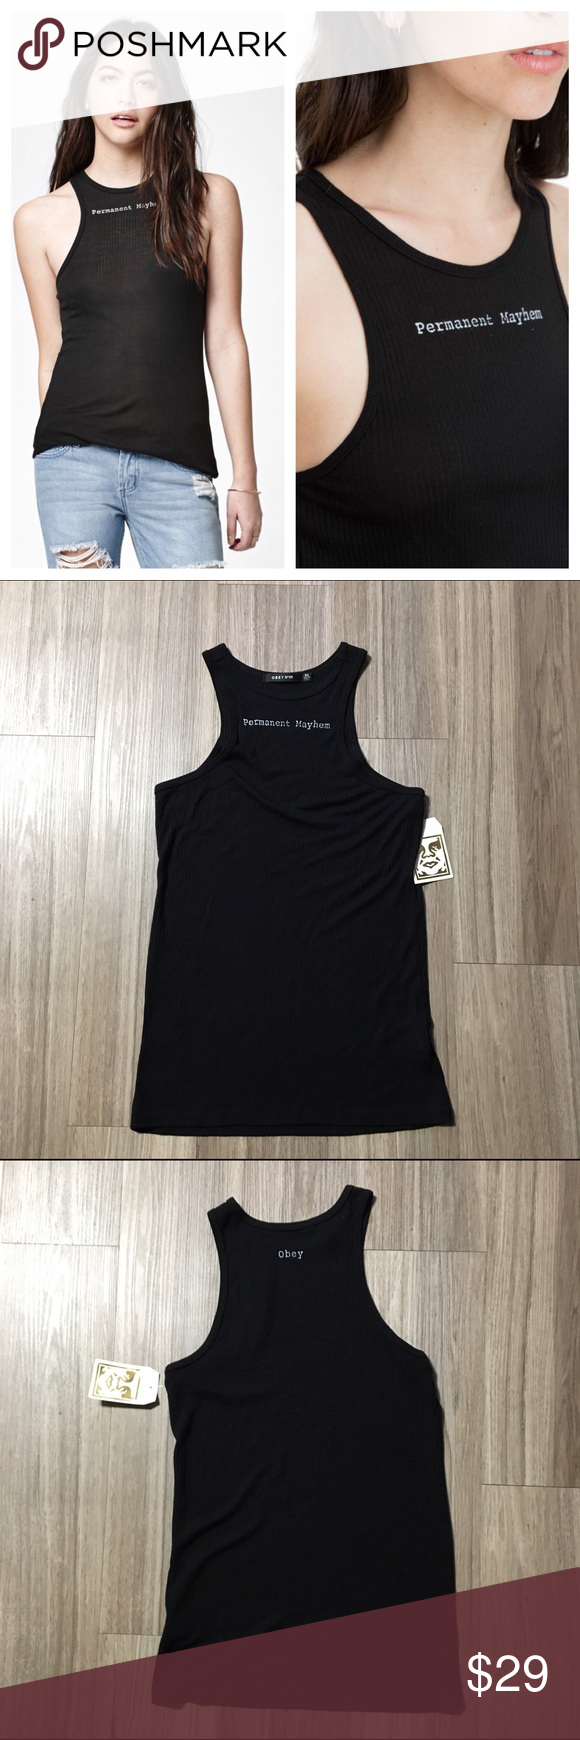 OBEY Permanent Mayhem Black Ribbed Tank Black Ribbed tank from Obey. Permanent Mayhem written on front, obey written on back. Brand new, with tags. Obey Tops Tank Tops